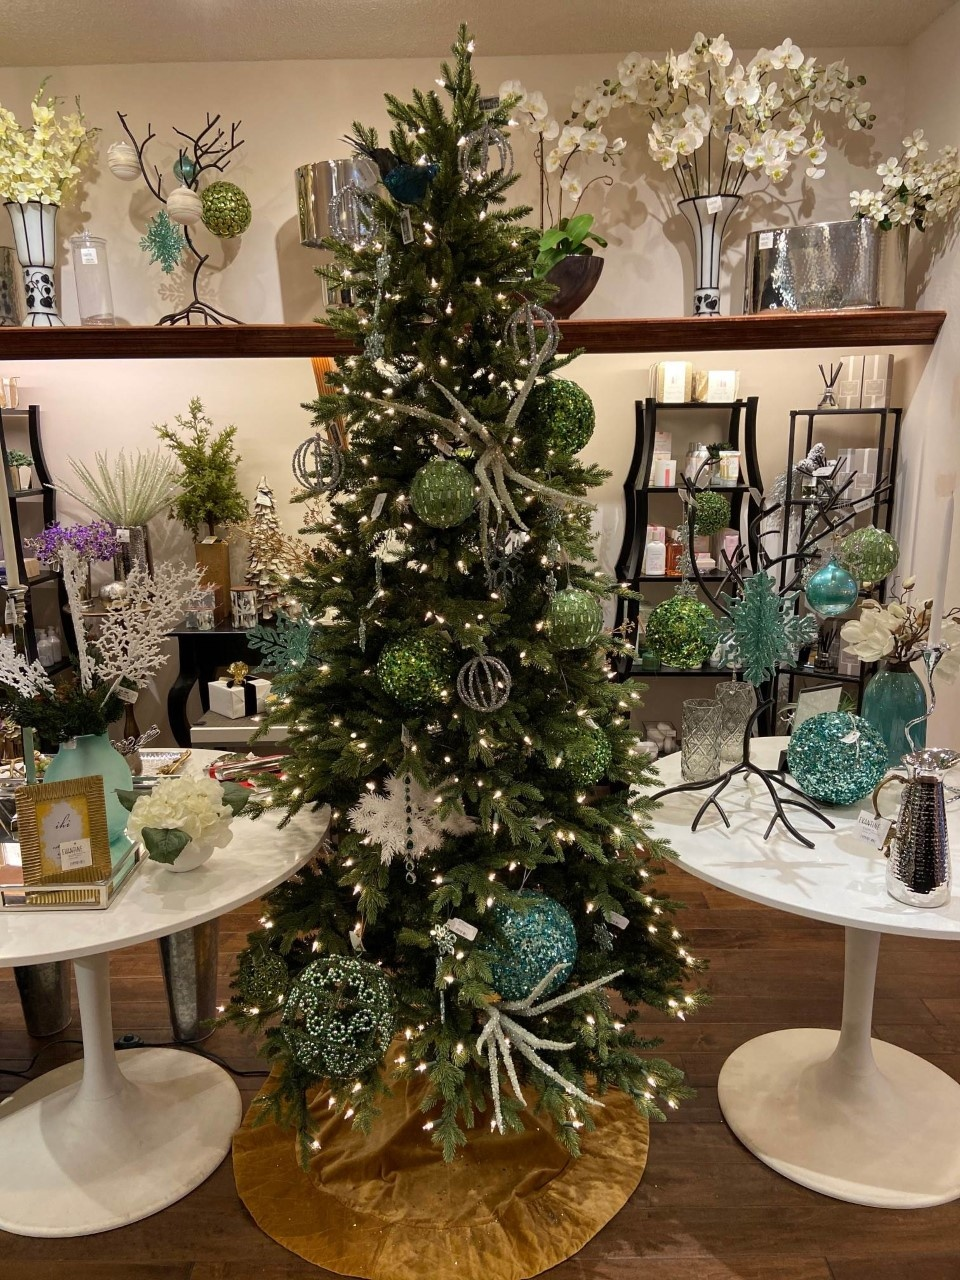 All That Glitters: Christmas Ornaments